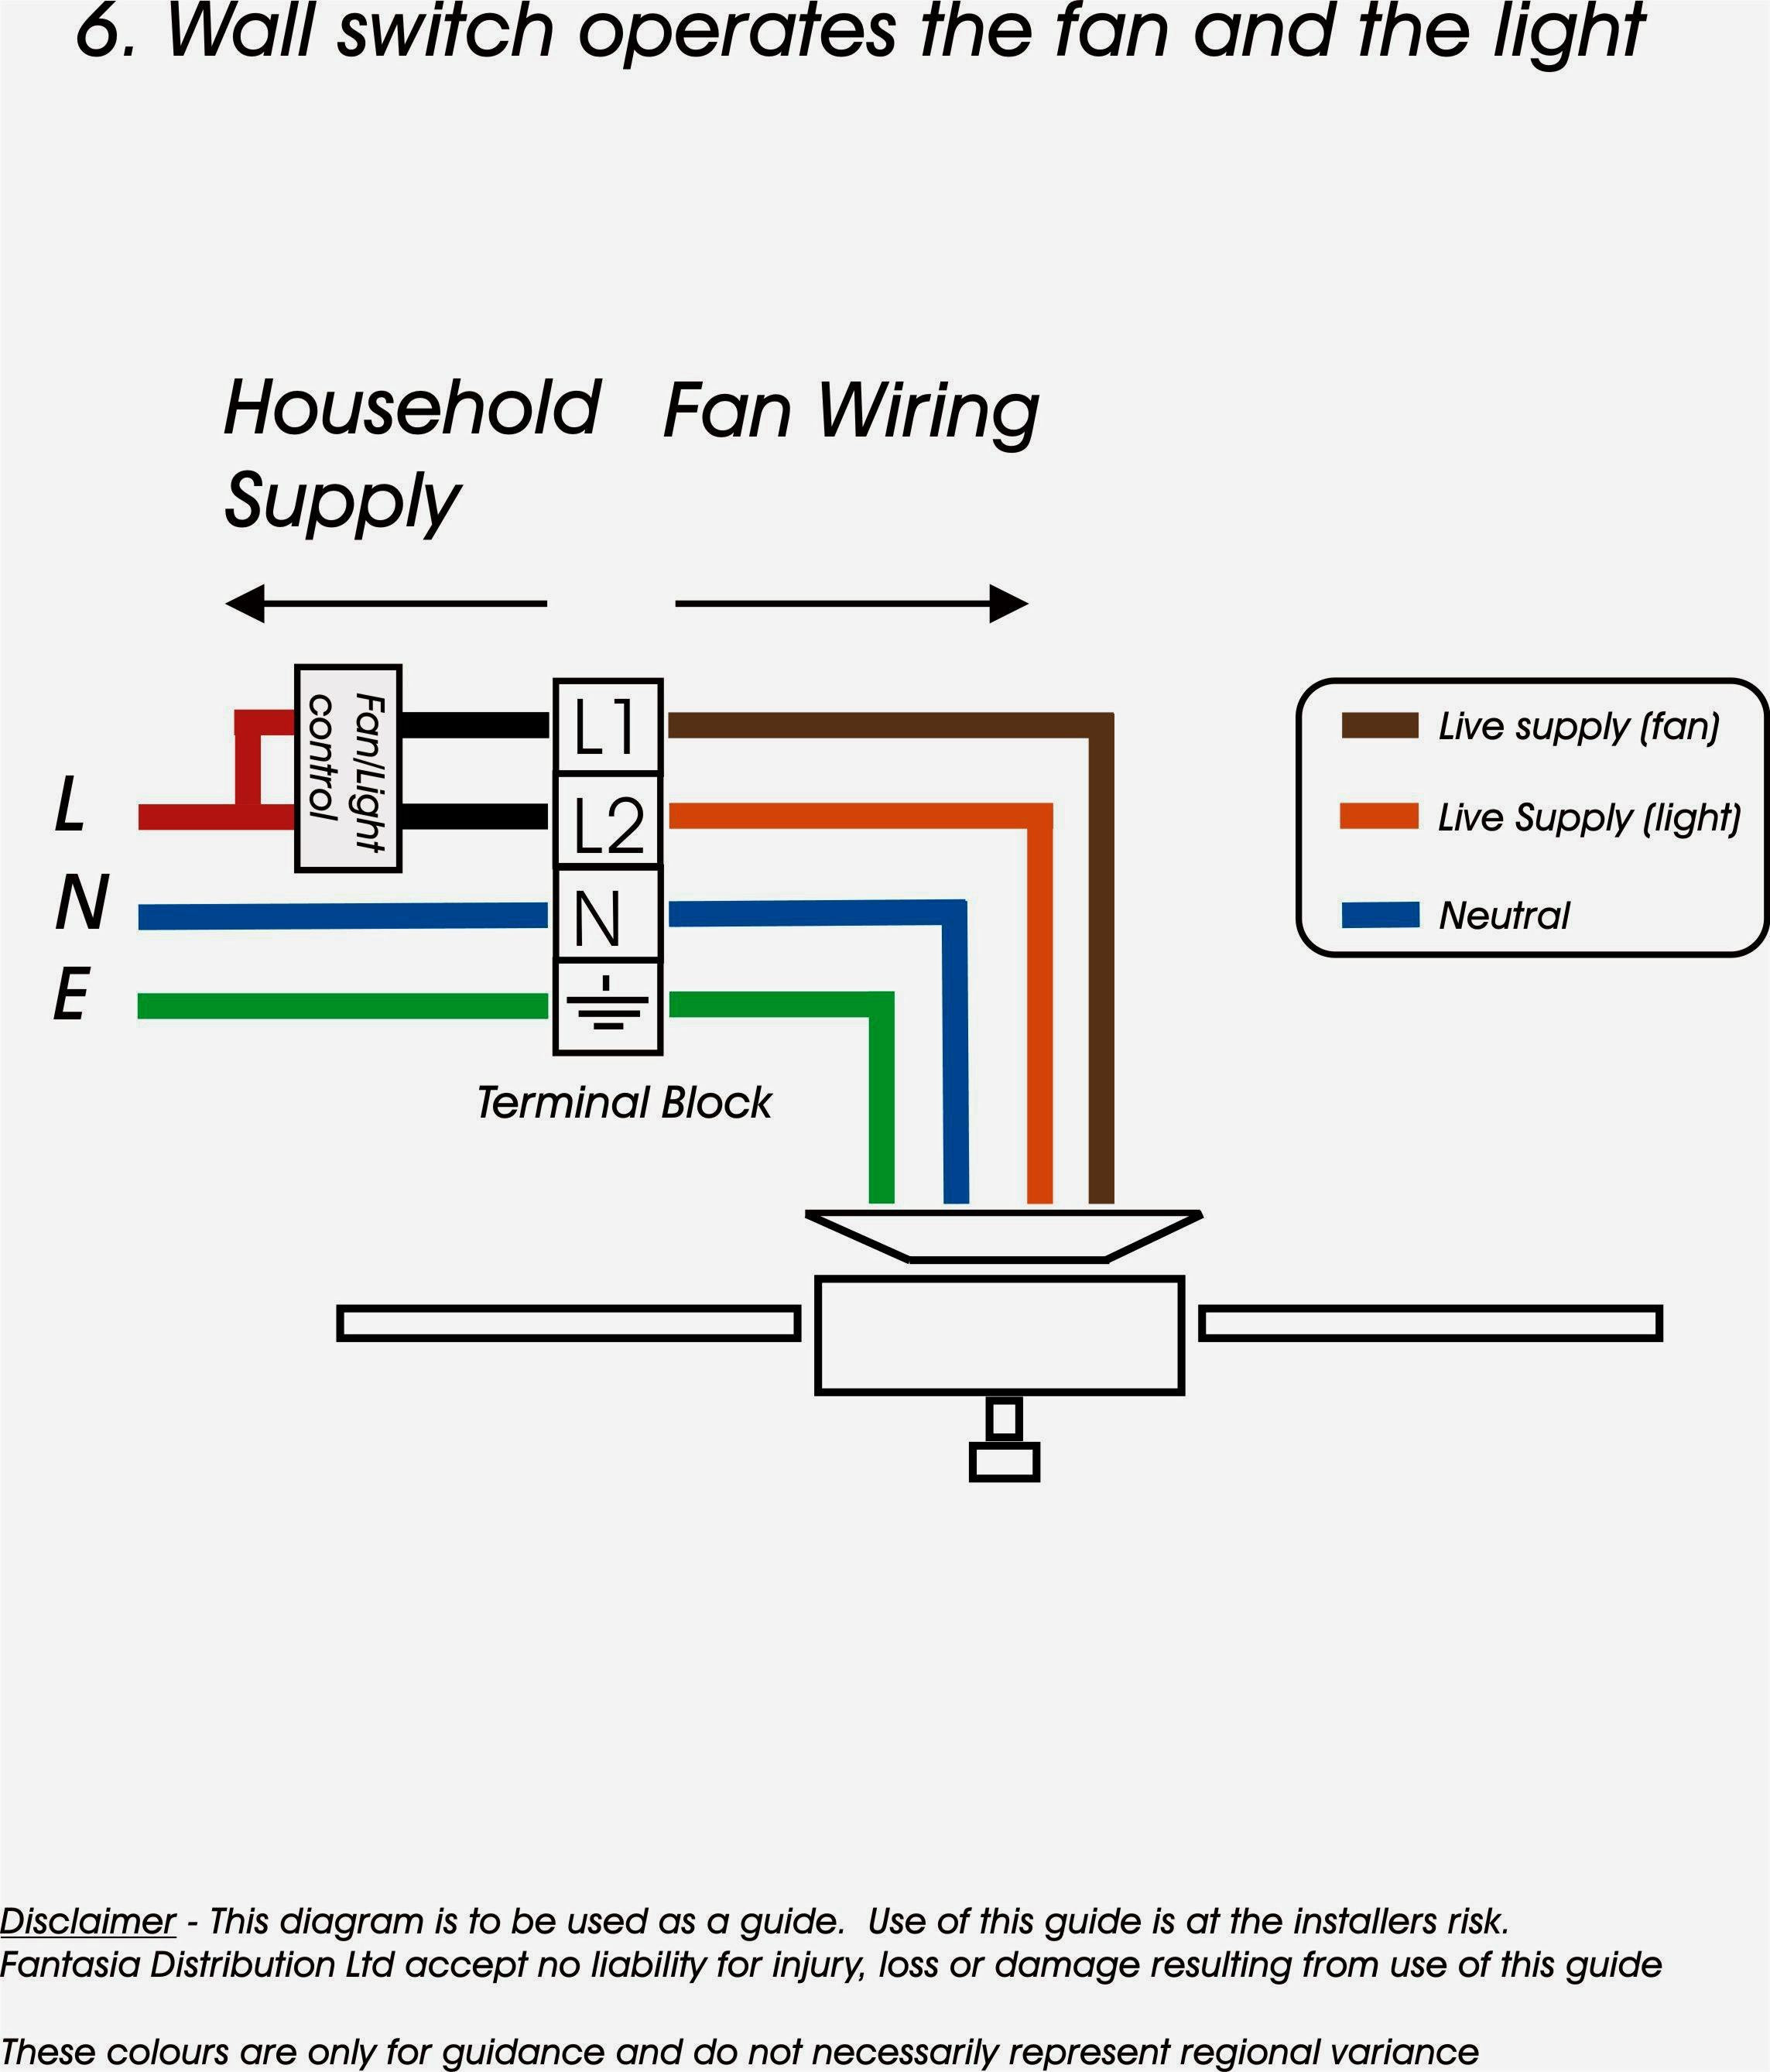 f96t12 ballast wiring diagram Collection-t12 ballast wiring diagram awesome magnetic f96t12 and justsayessto me rh justsayessto me Fluorescent Ballast Wiring Diagram F72T12 Ballast Wiring Diagram 18-o